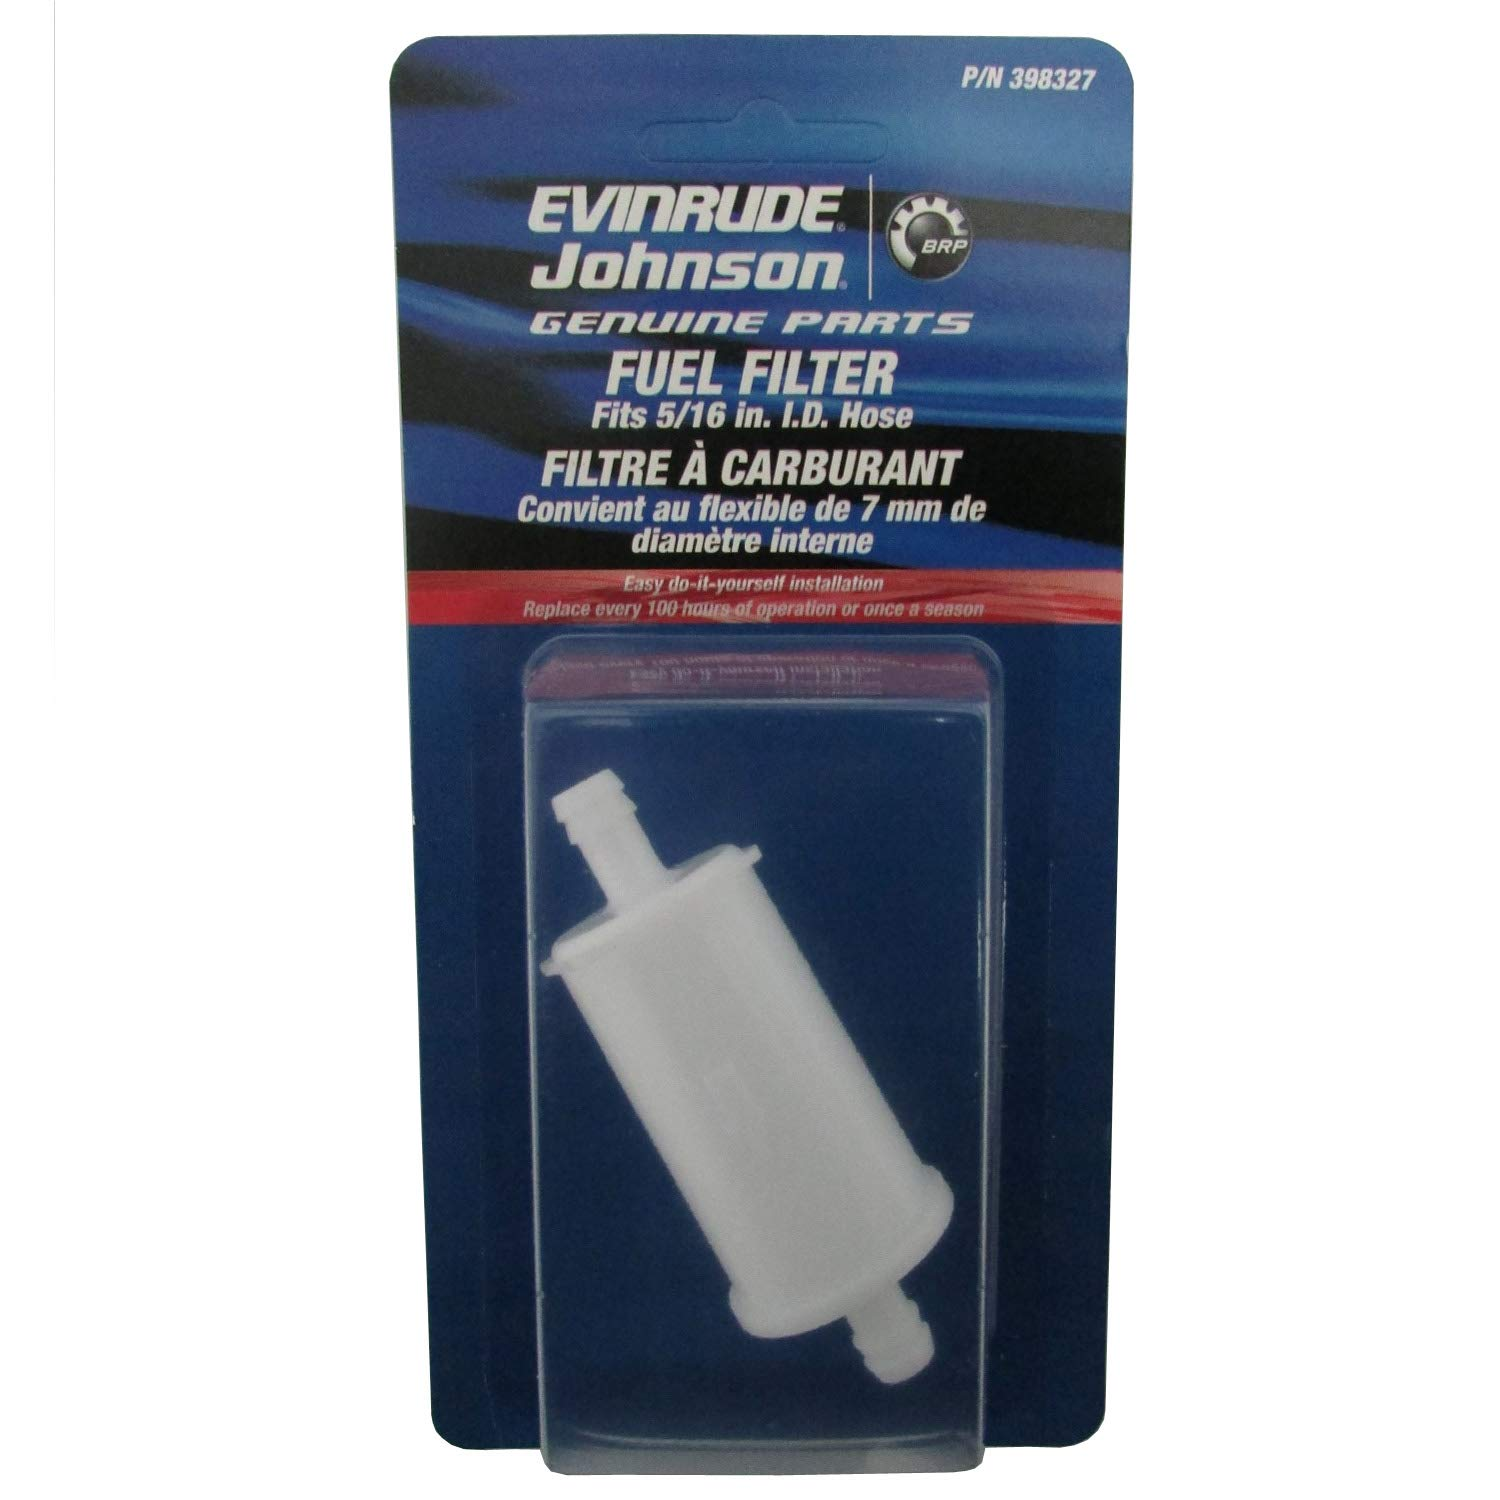 "Amazon.com: OEM Evinrude Johnson BRP Fuel Filter for 5/16"" Hose, 74 Micron  - 398327: Sports & Outdoors"